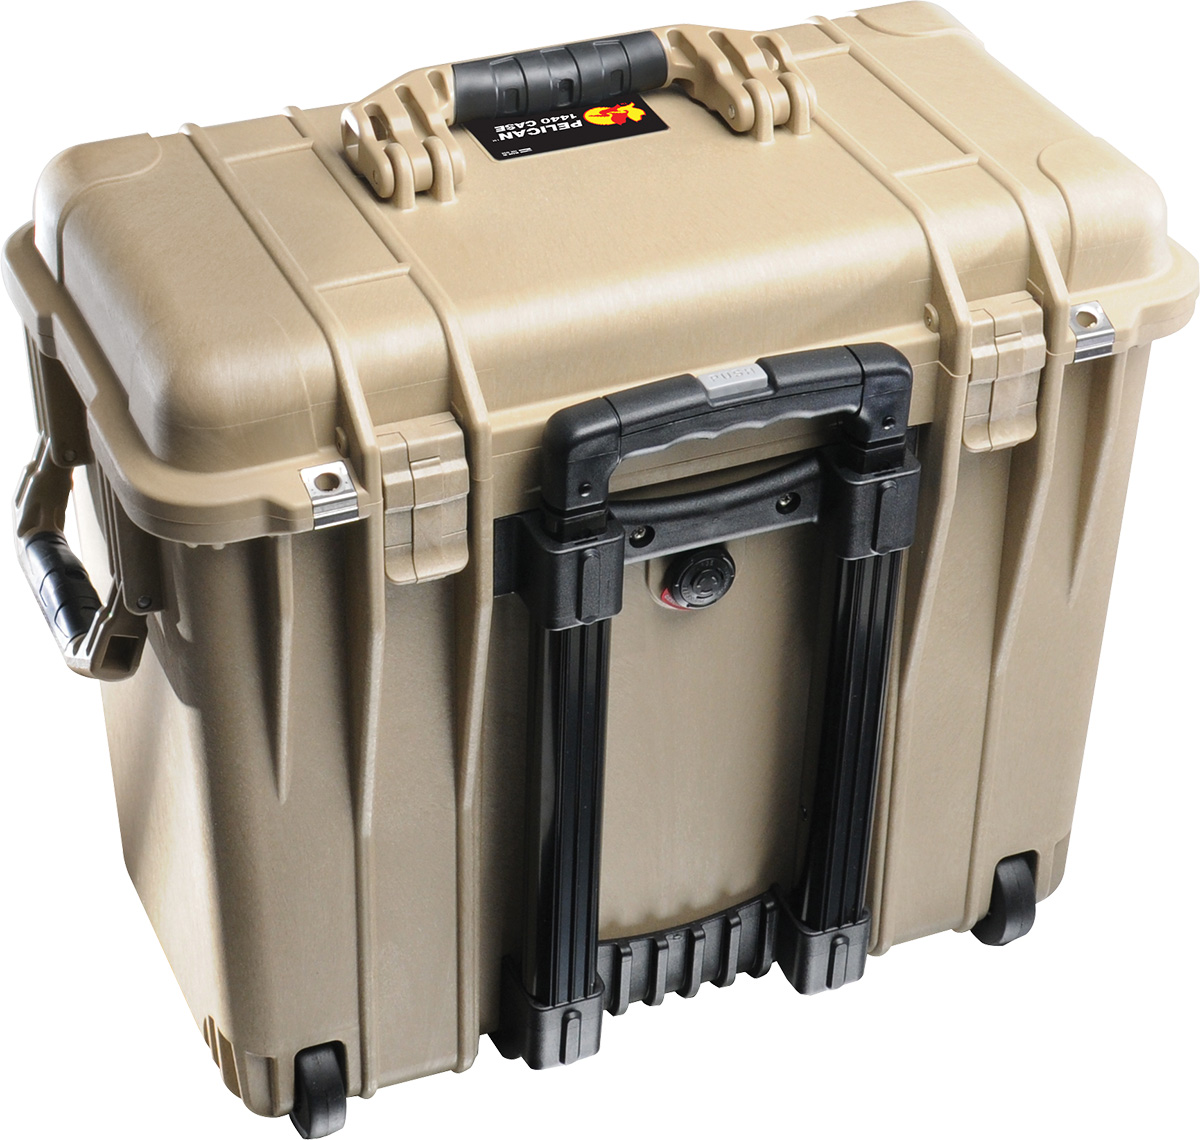 pelican 1440 crushproof travel case